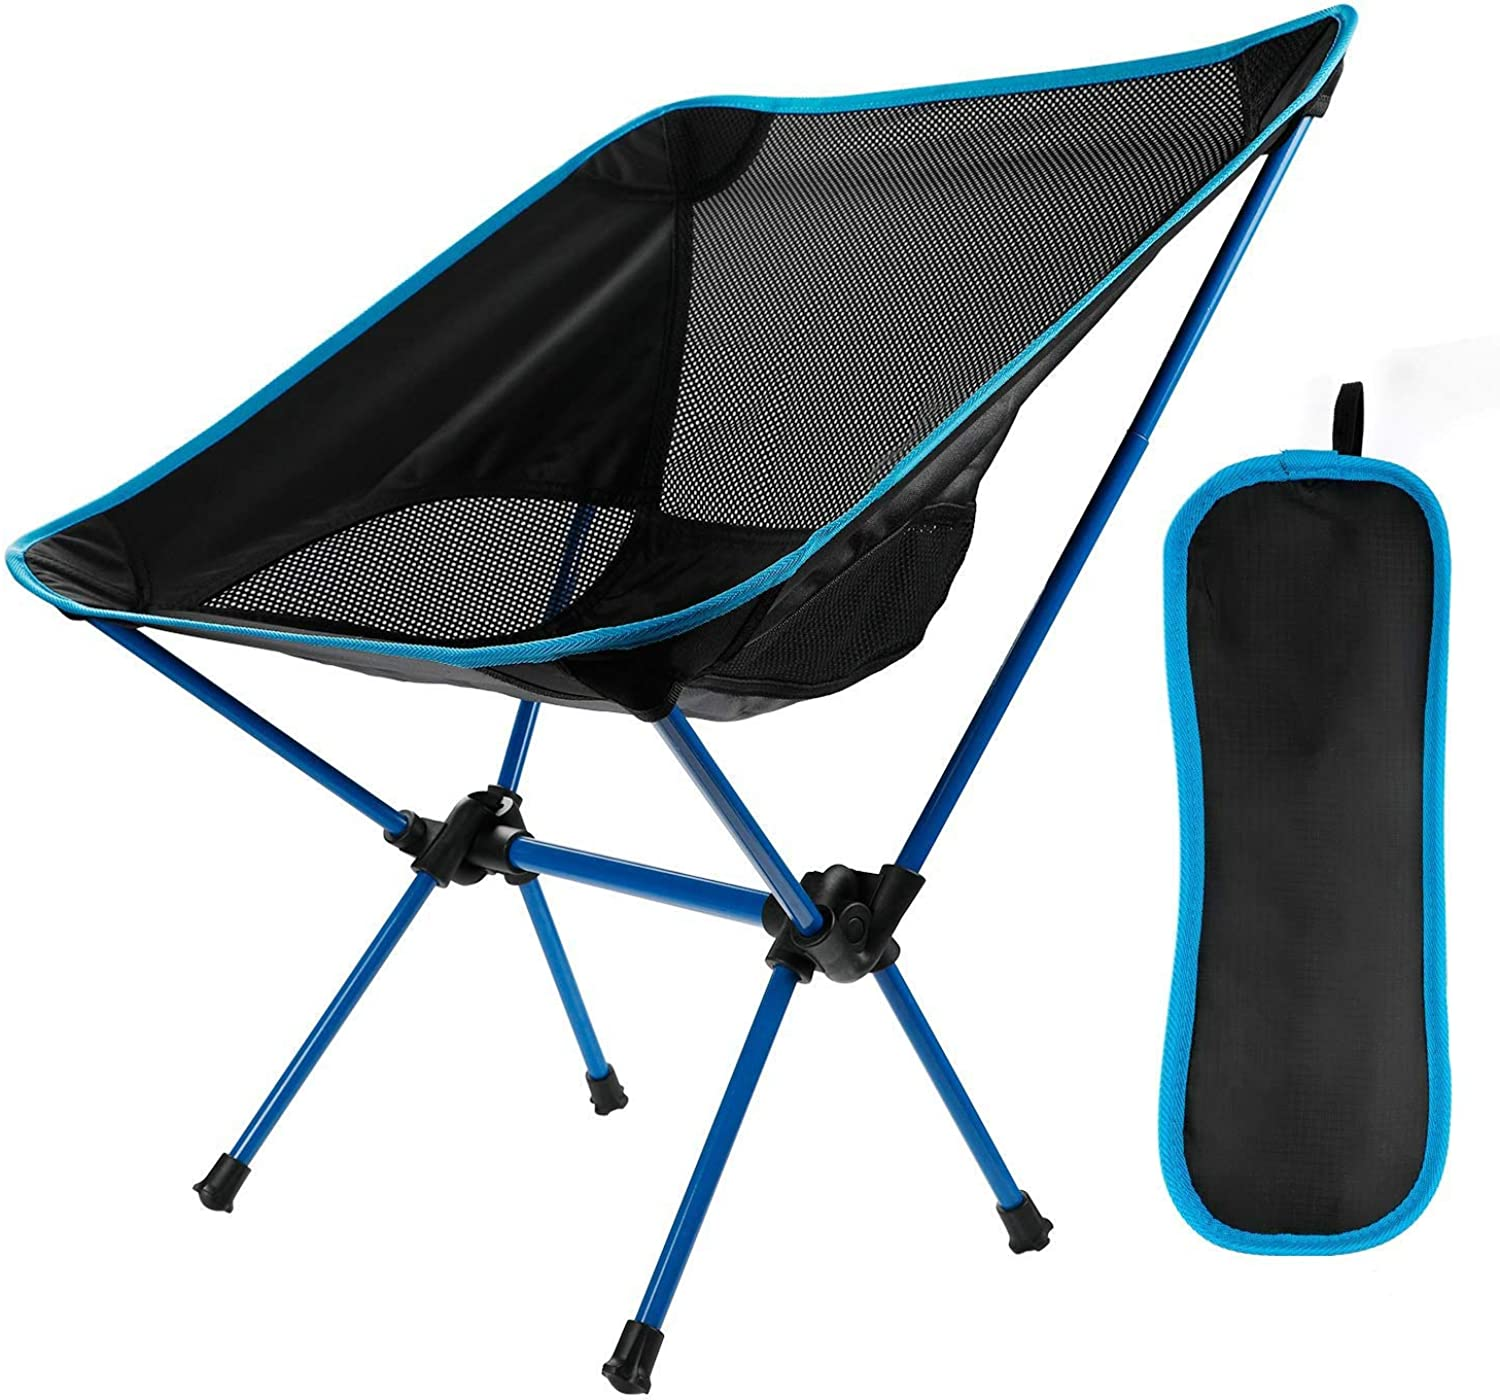 UltraLight Portable Folding Camping Chair with Tote, Barbecue, Picnic, Beach, Outdoor, Maximum Load 150 kg